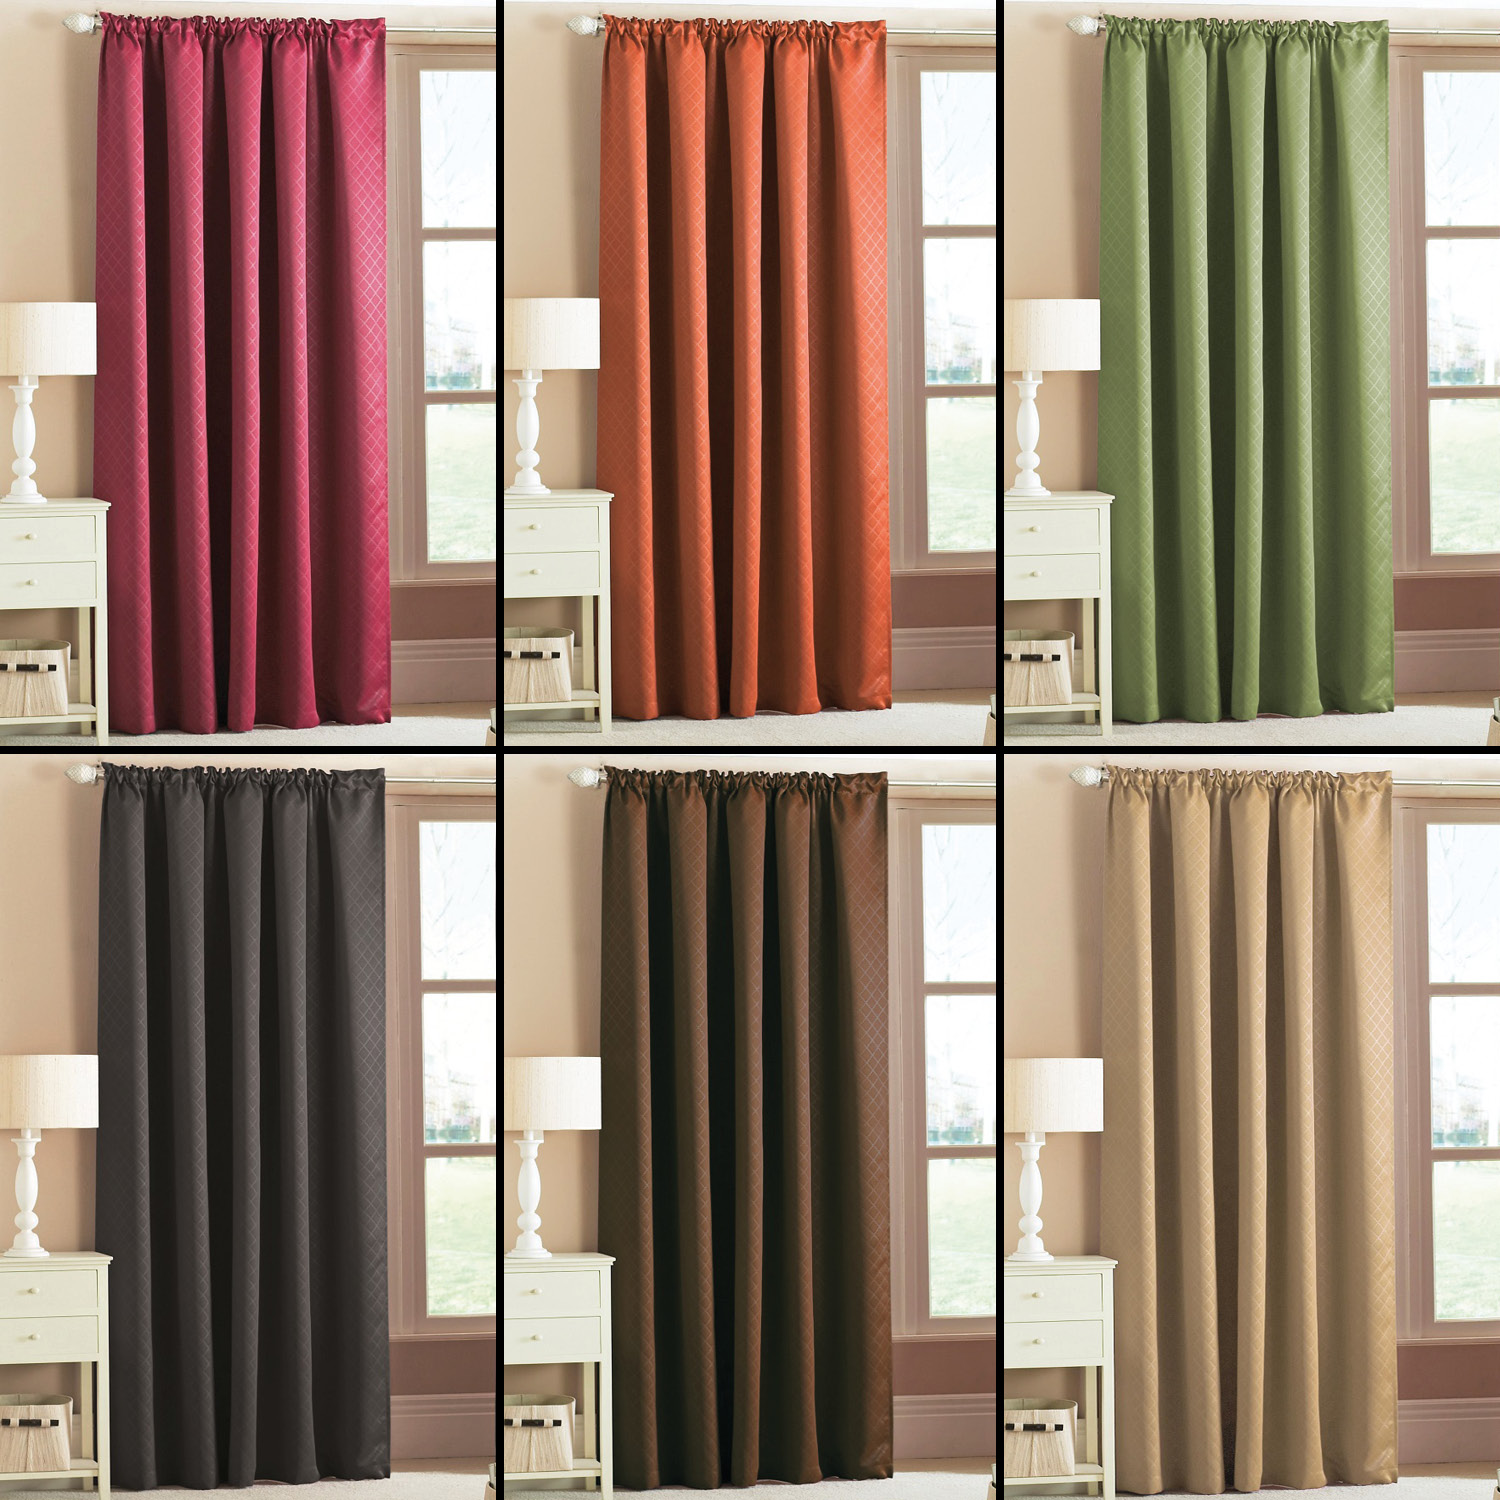 Details About Woven Thermal Blackout Tape Top Curtains Green Orange Brown Black Pink Natural